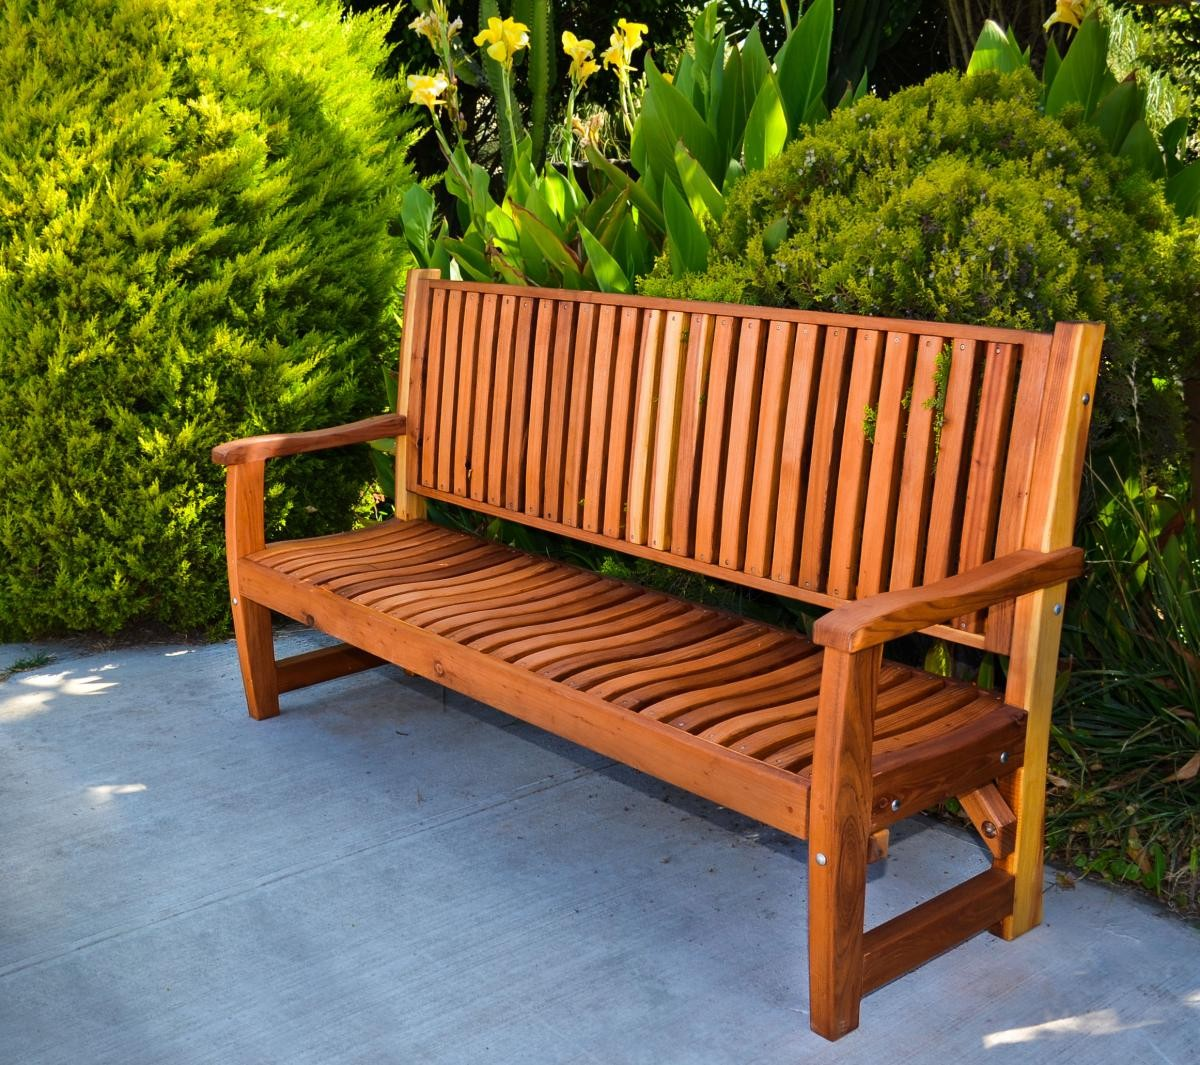 Redwood Deck Bench Plans Woodideas